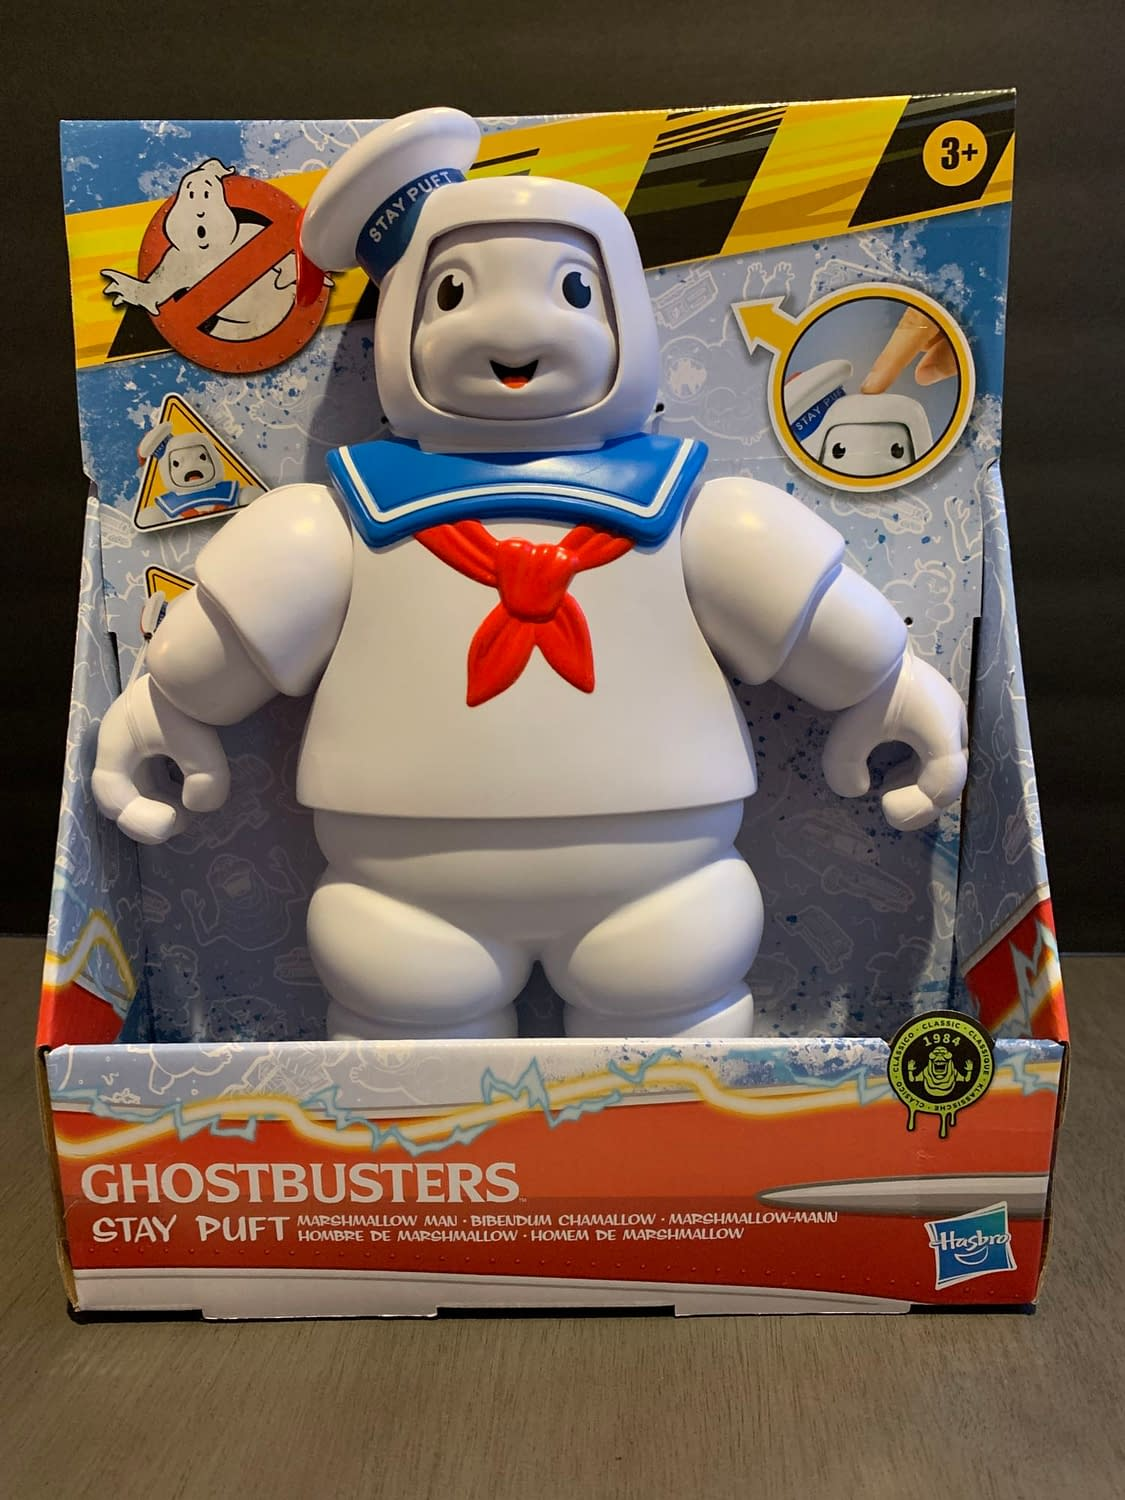 Let's Look At Some New Hasbro Ghostbusters Figures For All Ages